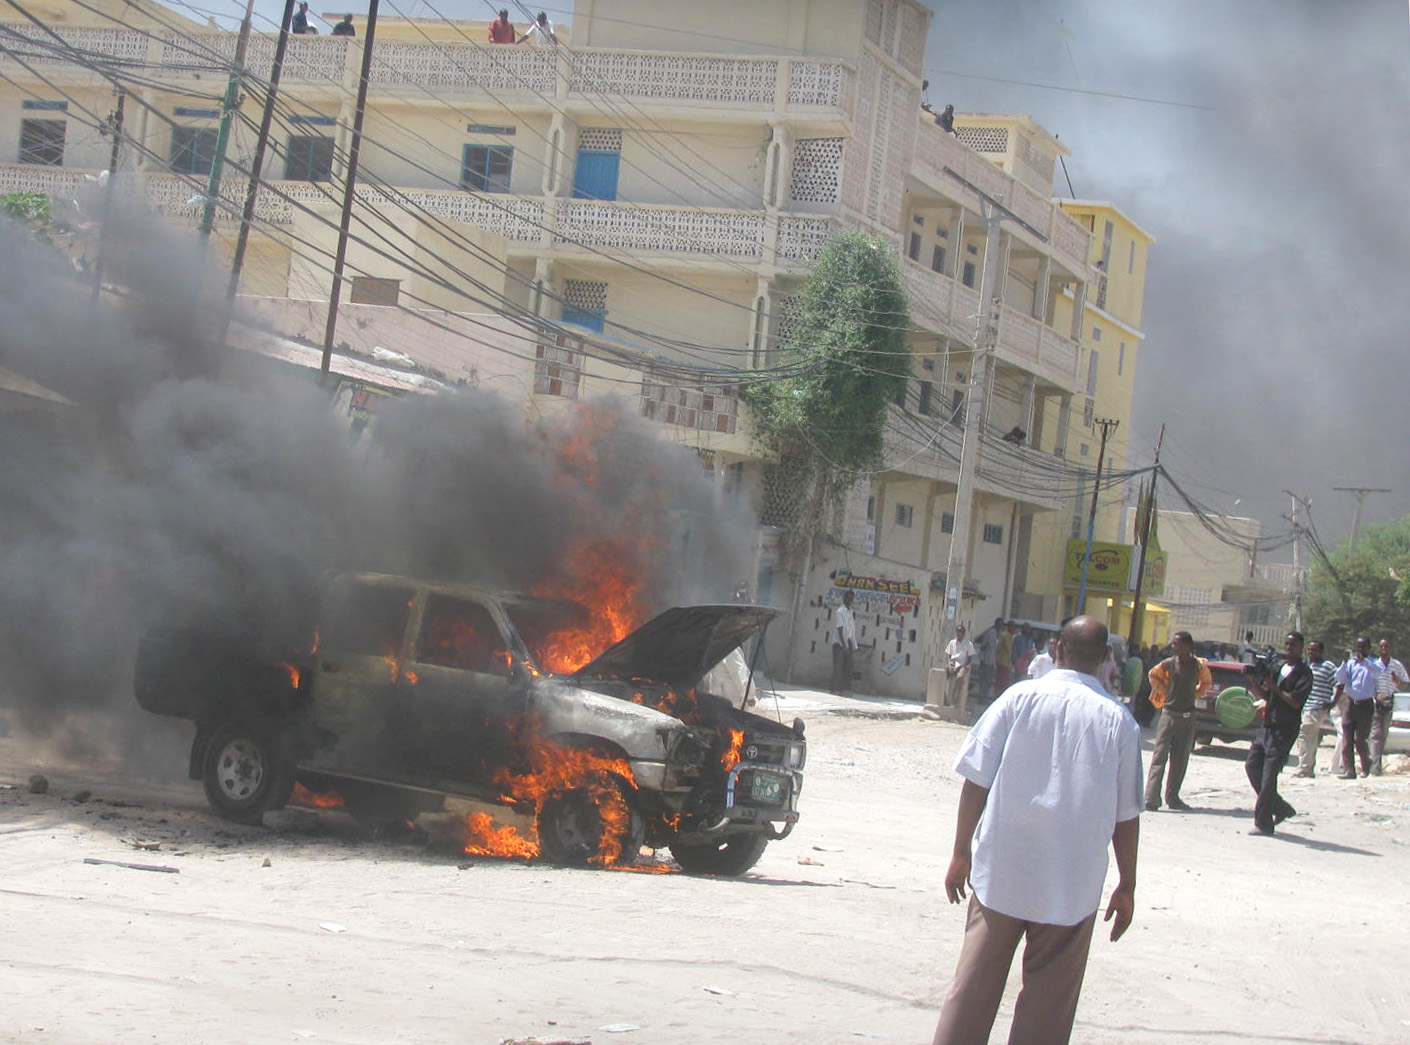 A government car is set ablaze in Hargeisa, capital of the secessionist territory of Somaliland, on 12 September as opposition supporters and civil service activists protested the closure of the lower house of representatives